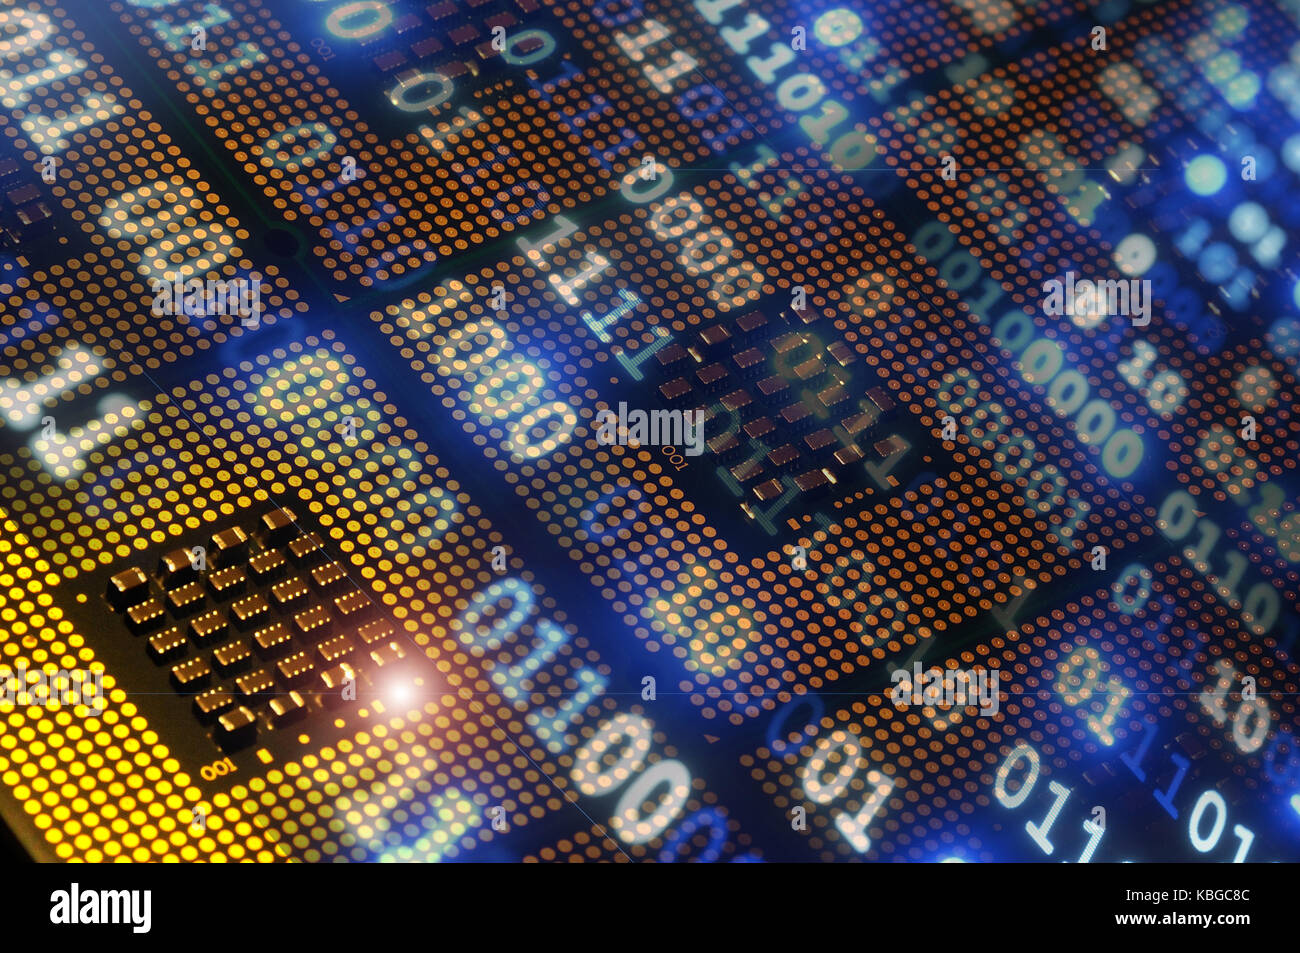 blue tech abstract background circuit stock photos   blue Electrical Circuit Board Components Sound Electronic Circuit Laser Tripwire